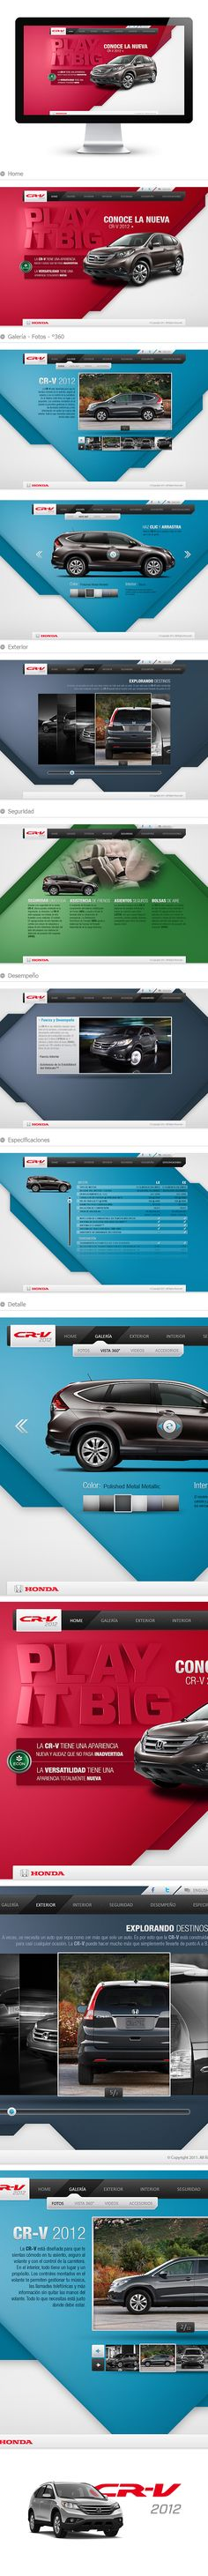 CR - V 2012 - Honda by Israel Trujillo, via Behance